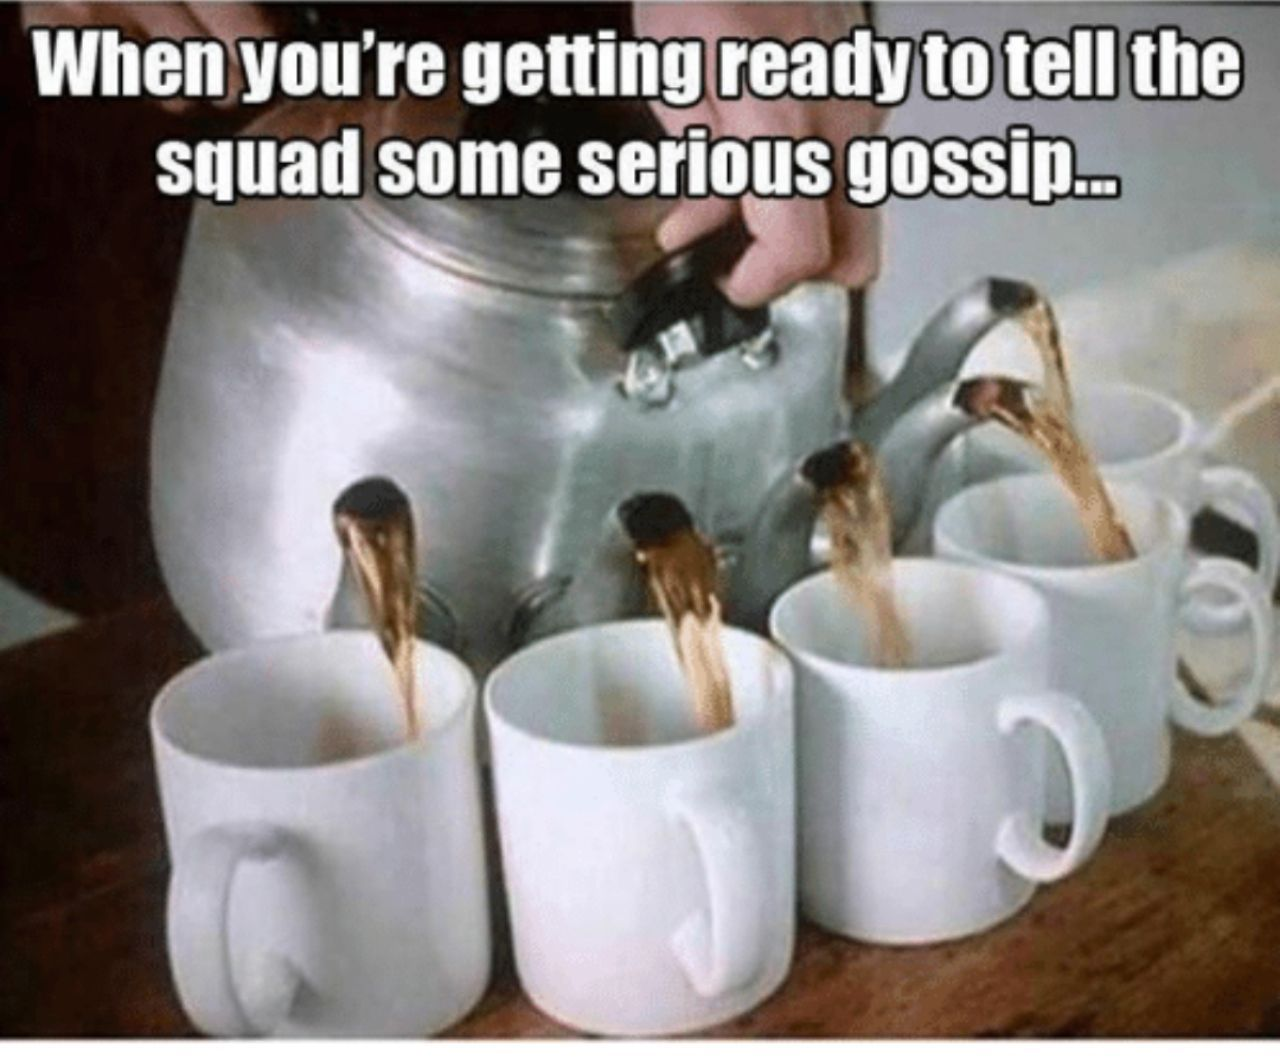 When you are getting ready to tell the squad some serious gossip